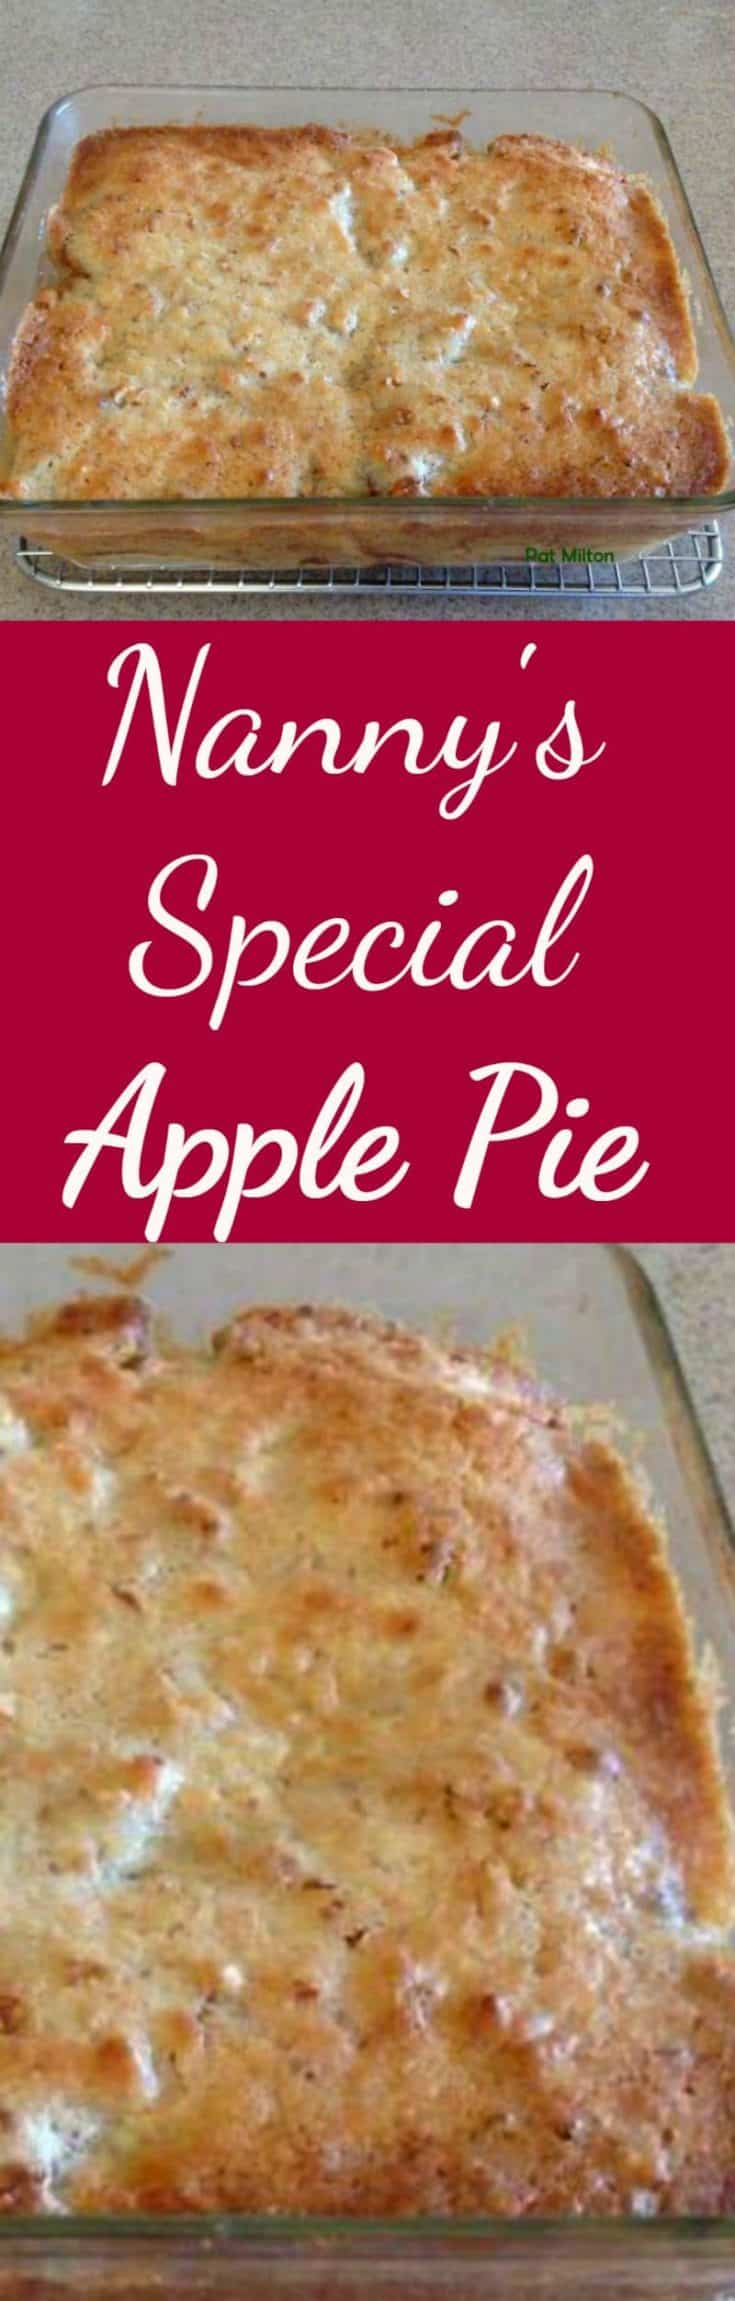 Nanny Pat's Special Apple Pie. This apple pie is an old family recipe and always very popular, especially for those who prefer a crustless pie!